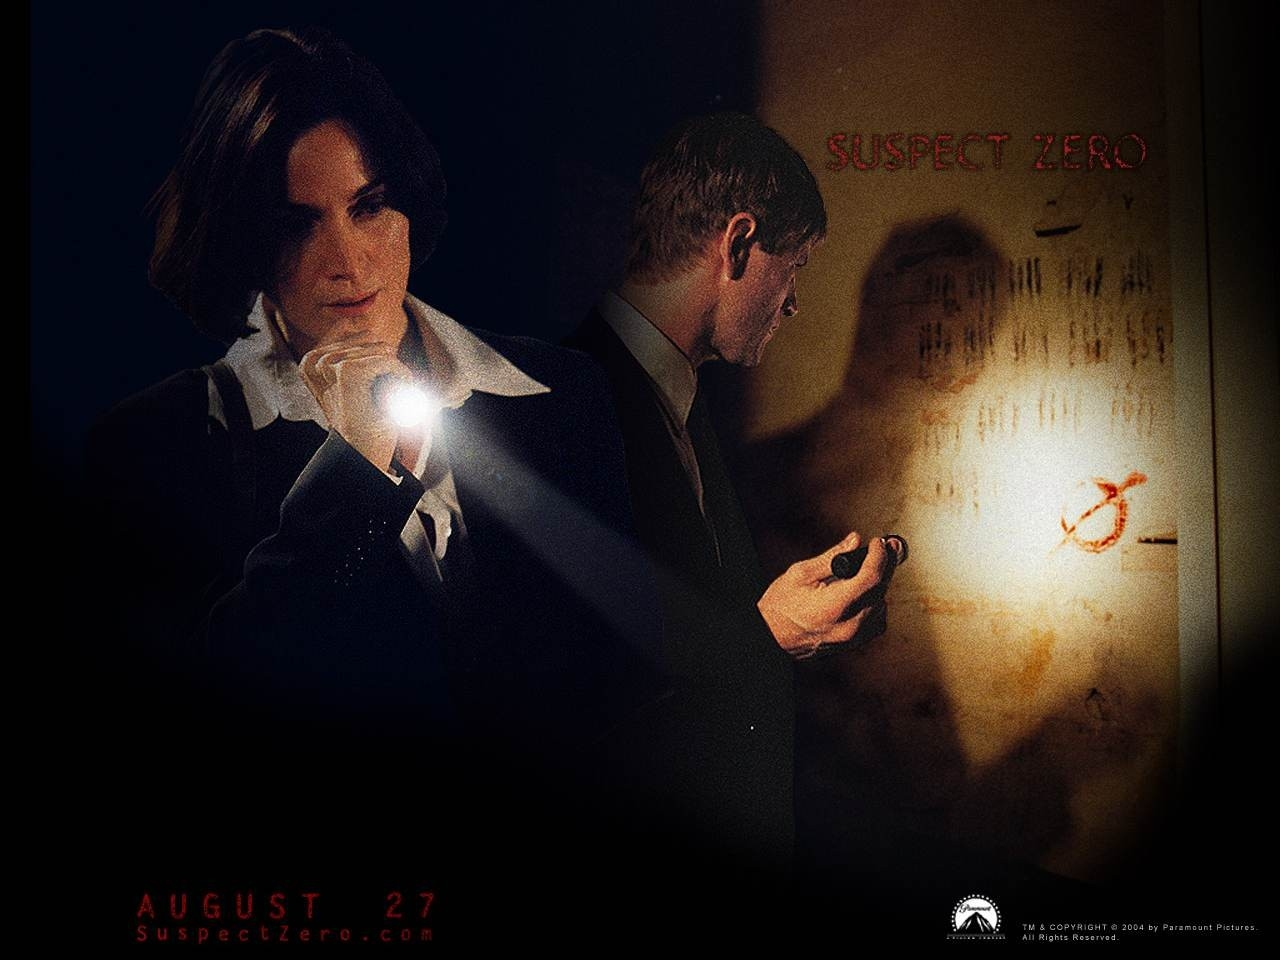 Wallpaper del film Suspect Zero con Carrie Anne-Moss